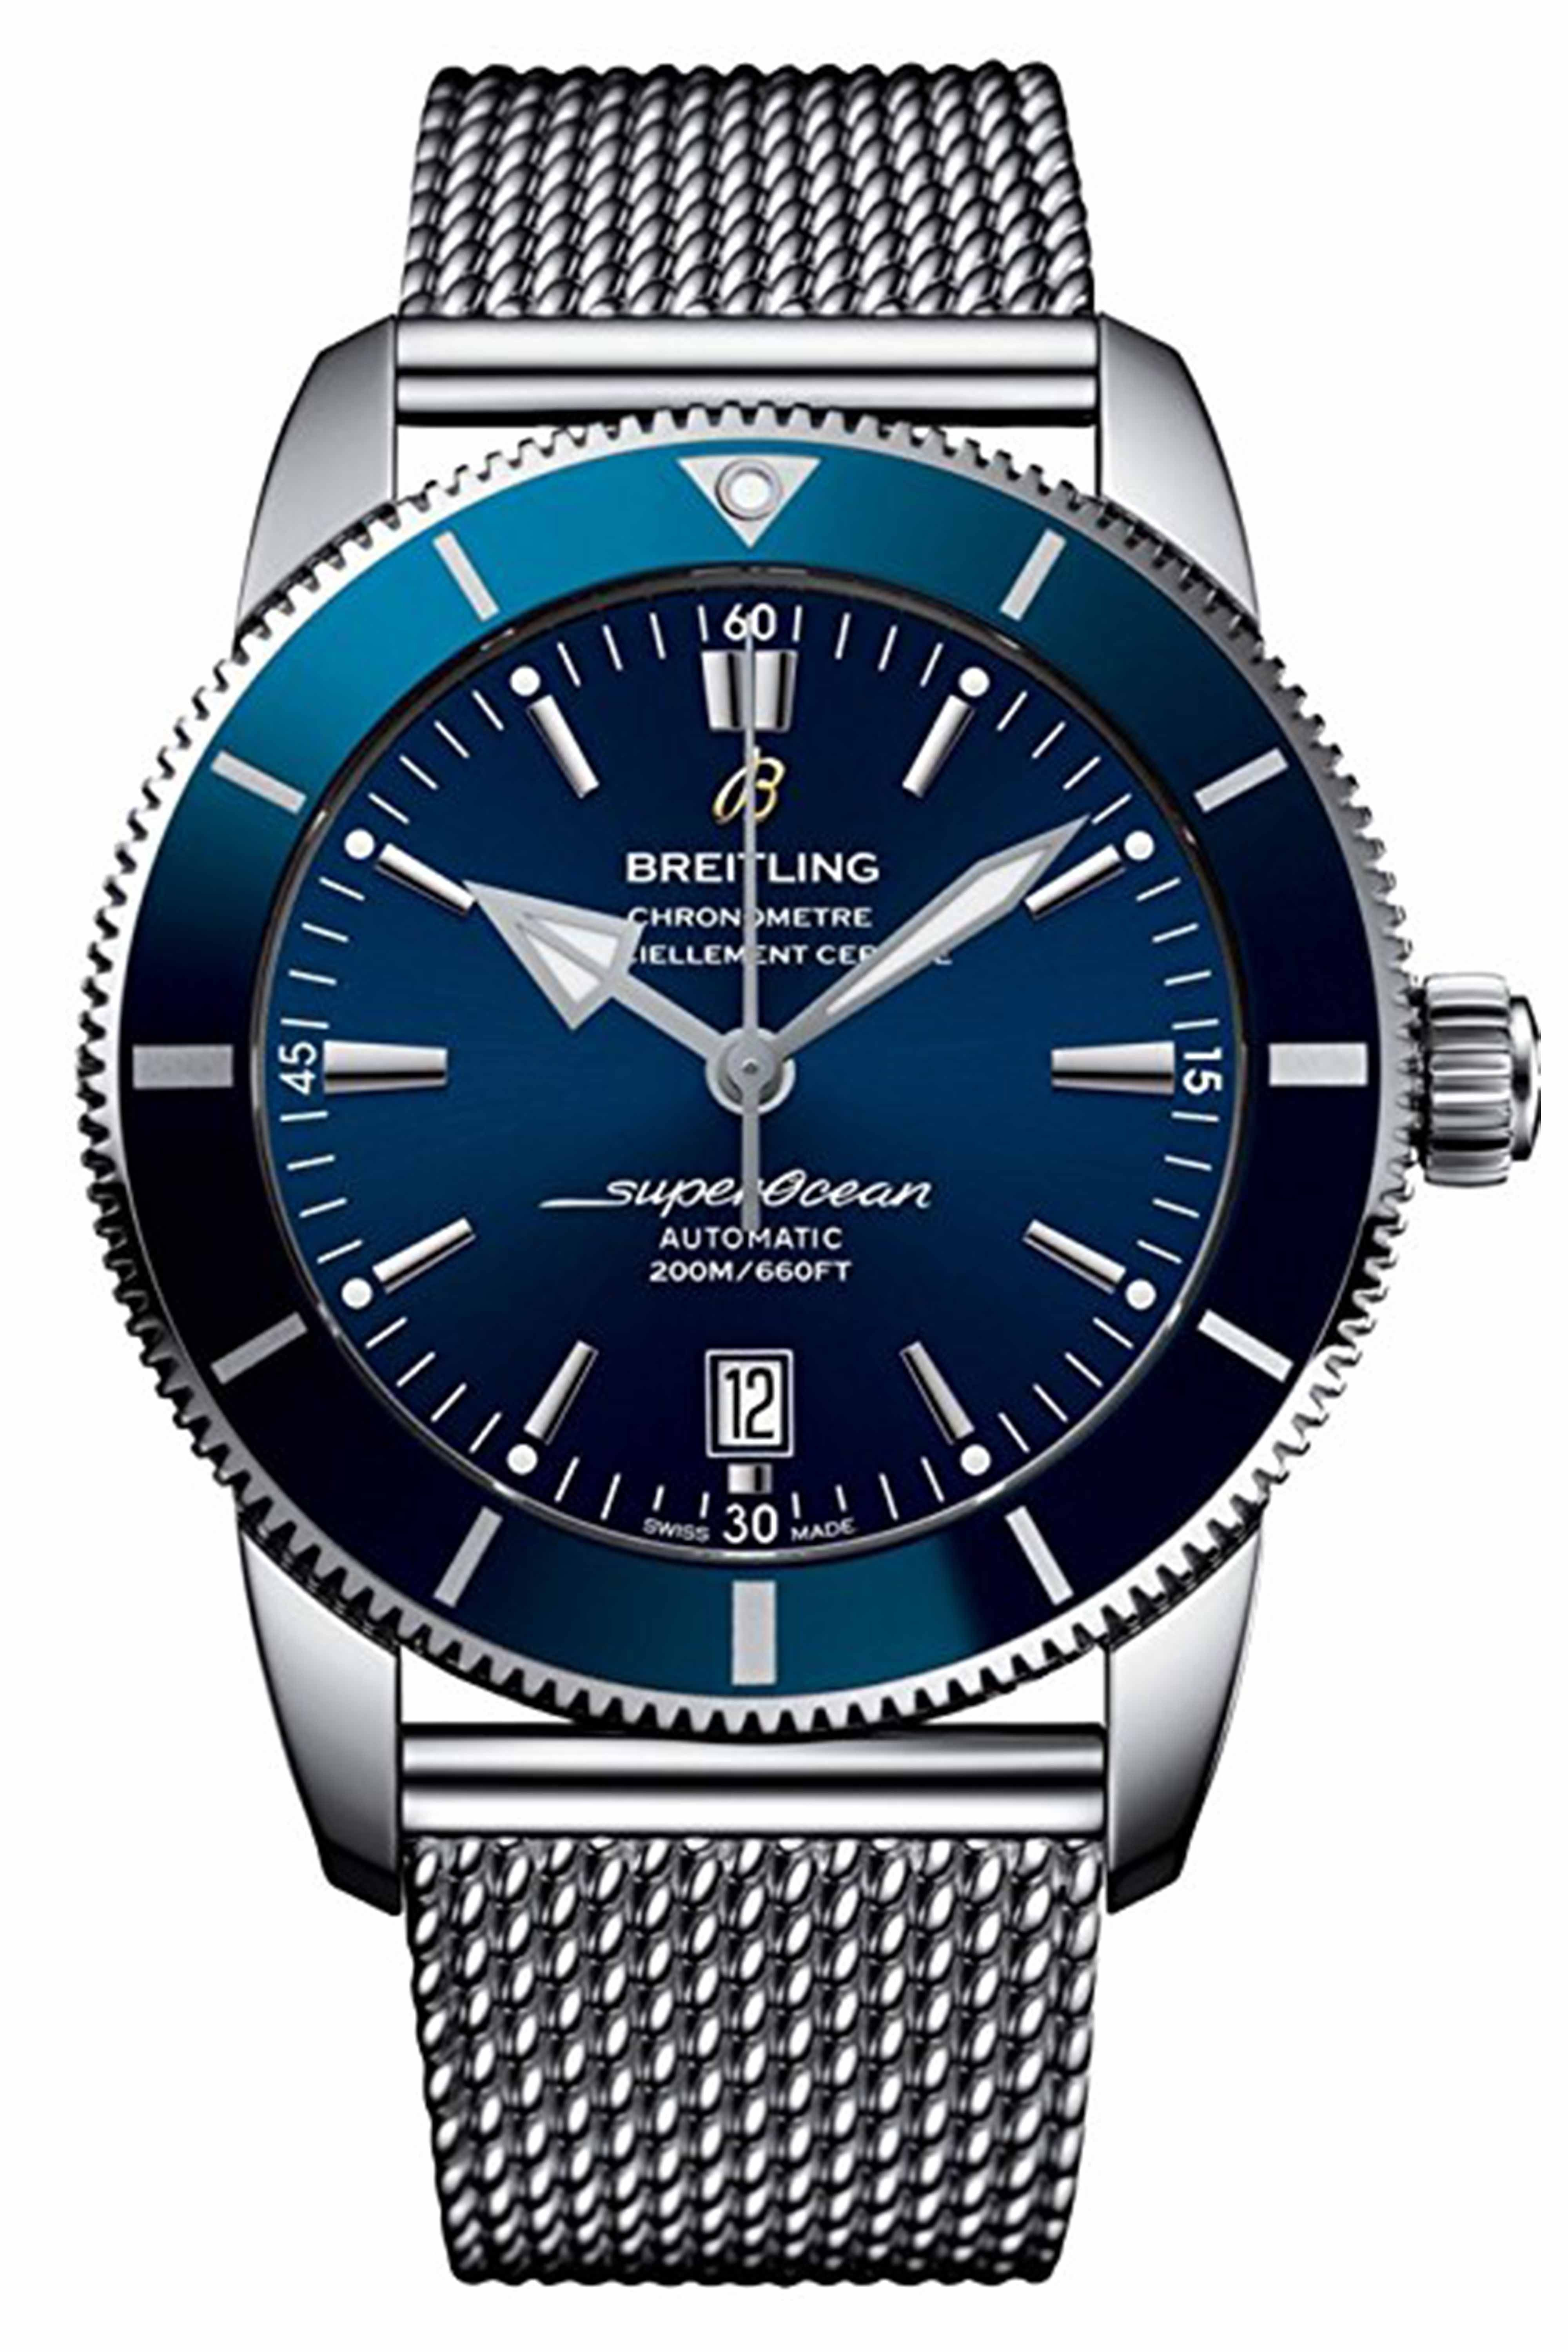 dcf7b27bbb1 26 Best Men s Luxury Watches of 2018 - Nice Expensive Watches for Men